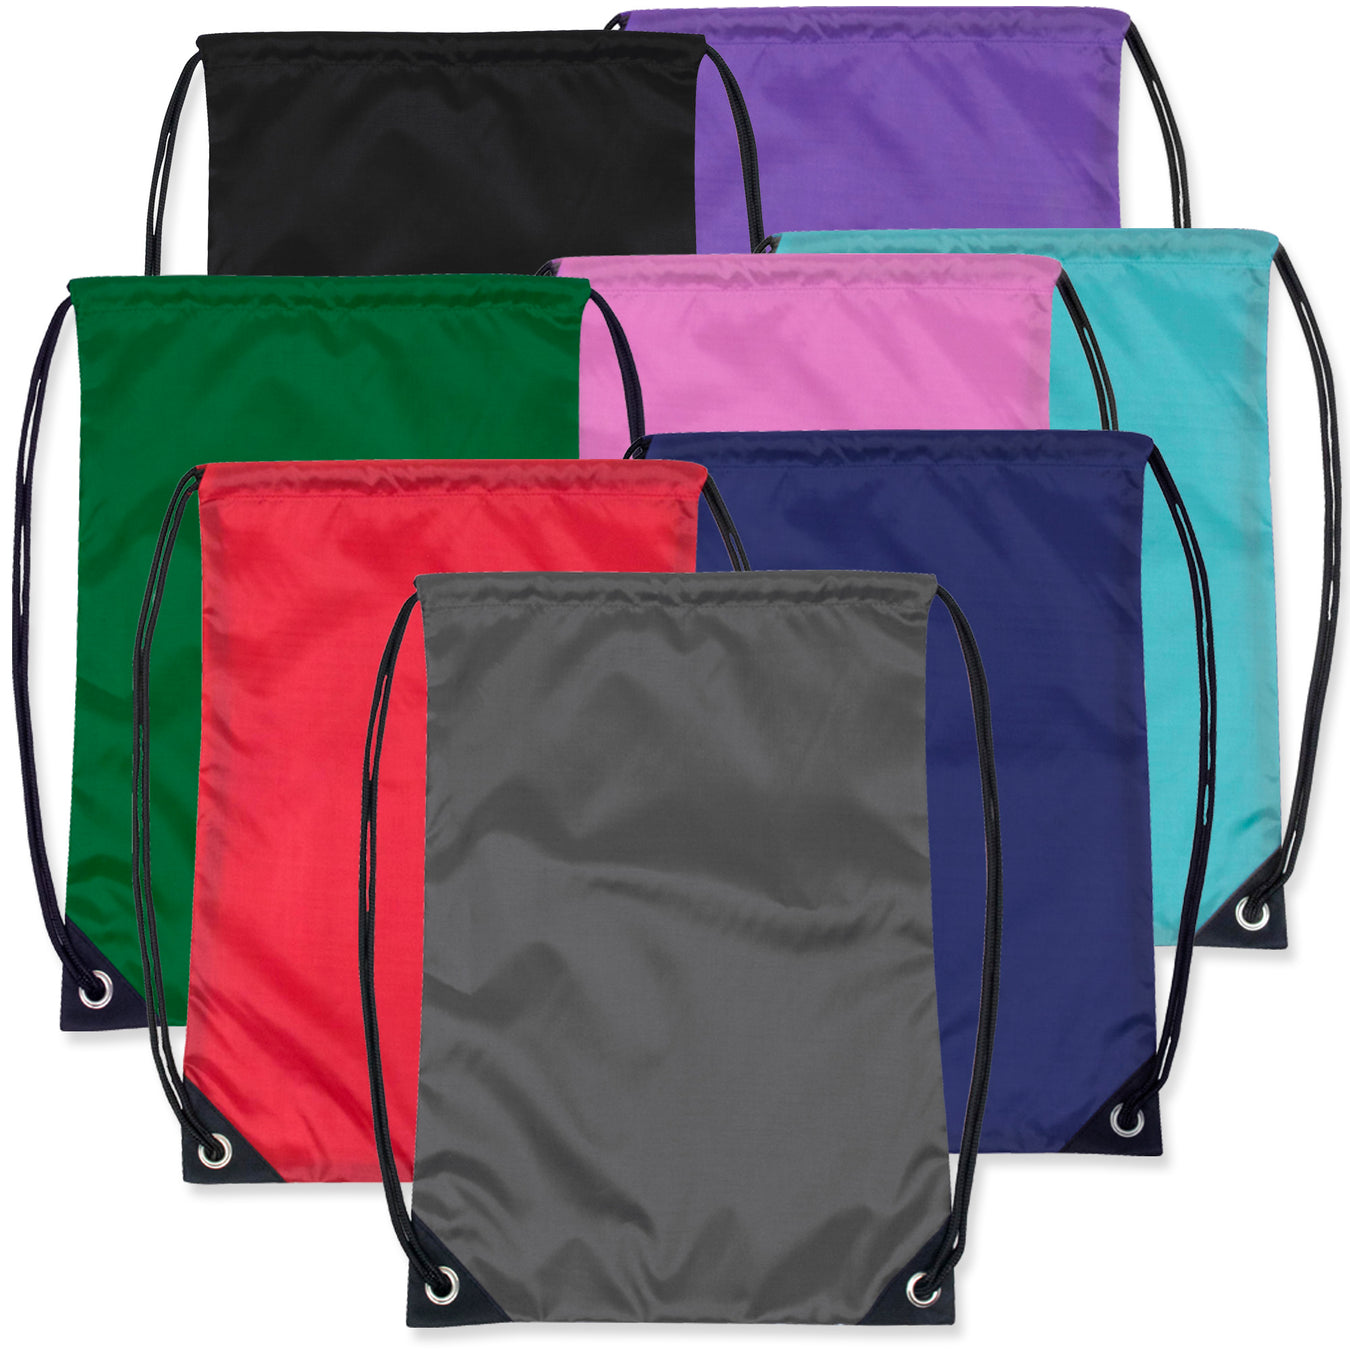 b8d5b821c49 Wholesale Backpacks at Cheap Bulk Prices Free Shipping — bagsinbulk